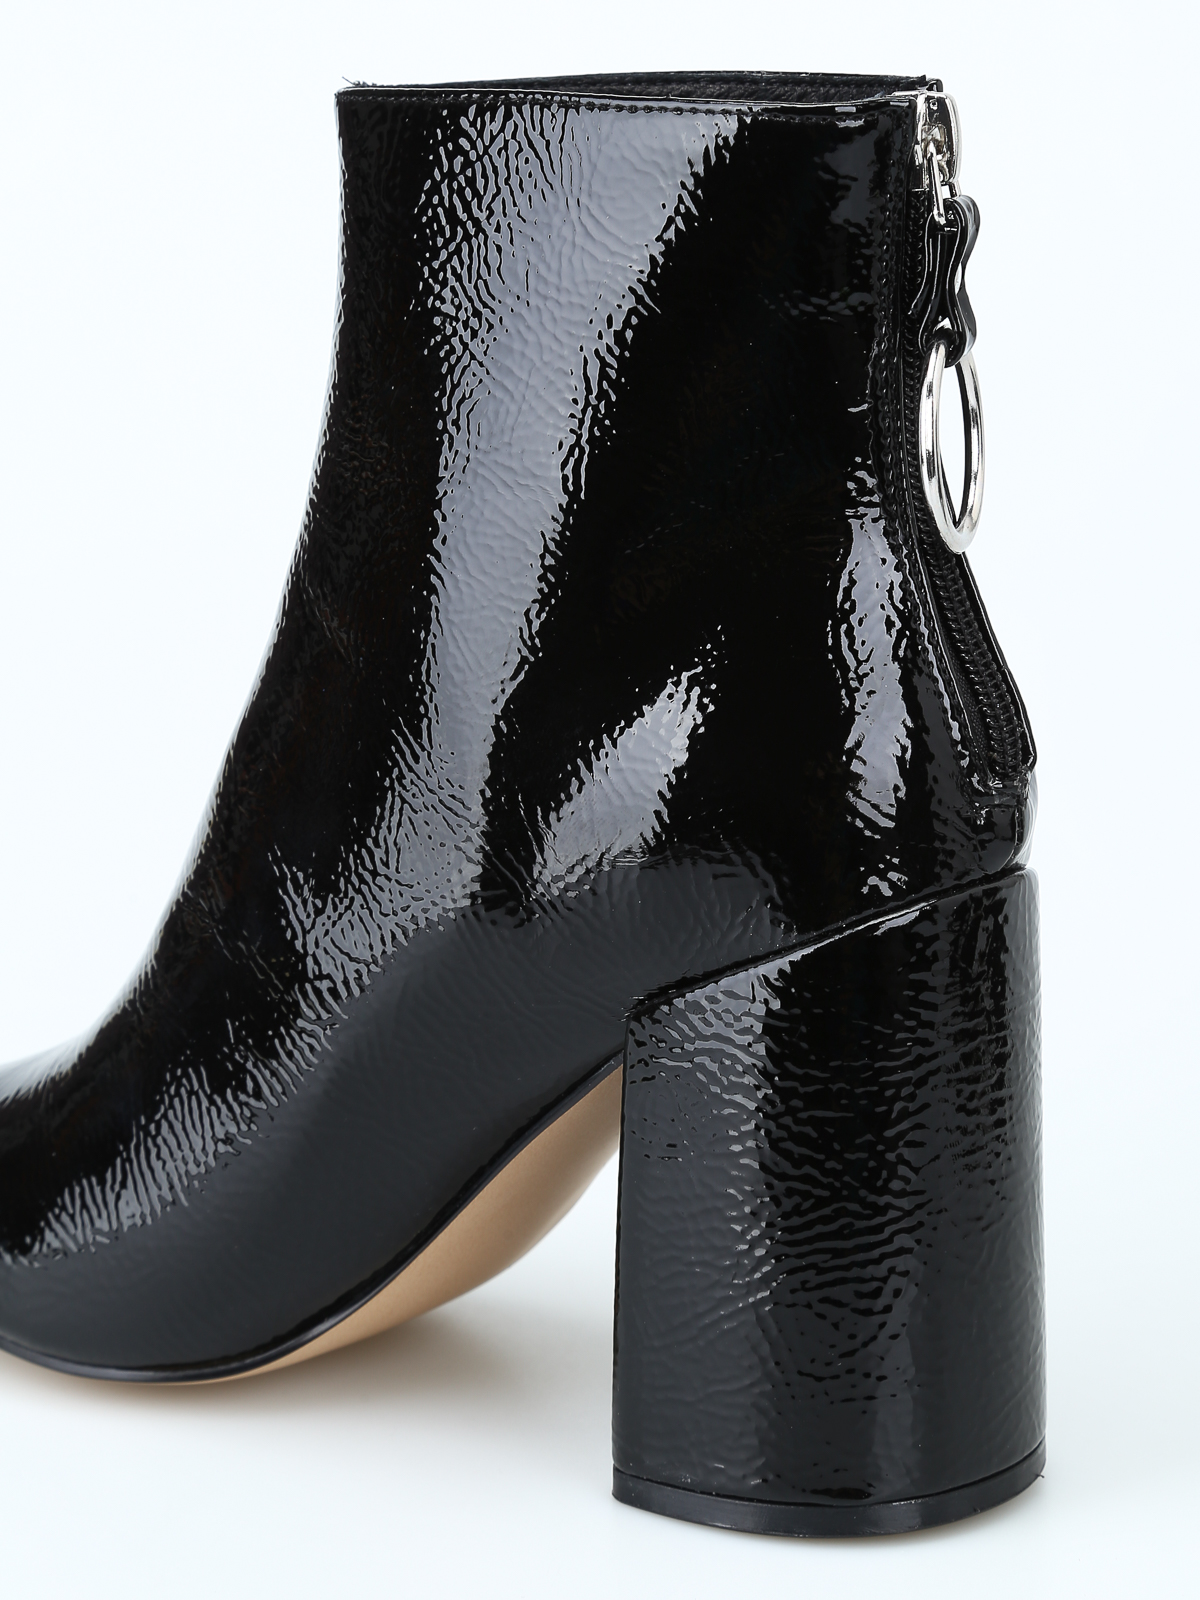 bee4a232874 Steve Madden - Posed black faux patent ankle boots - ankle boots ...